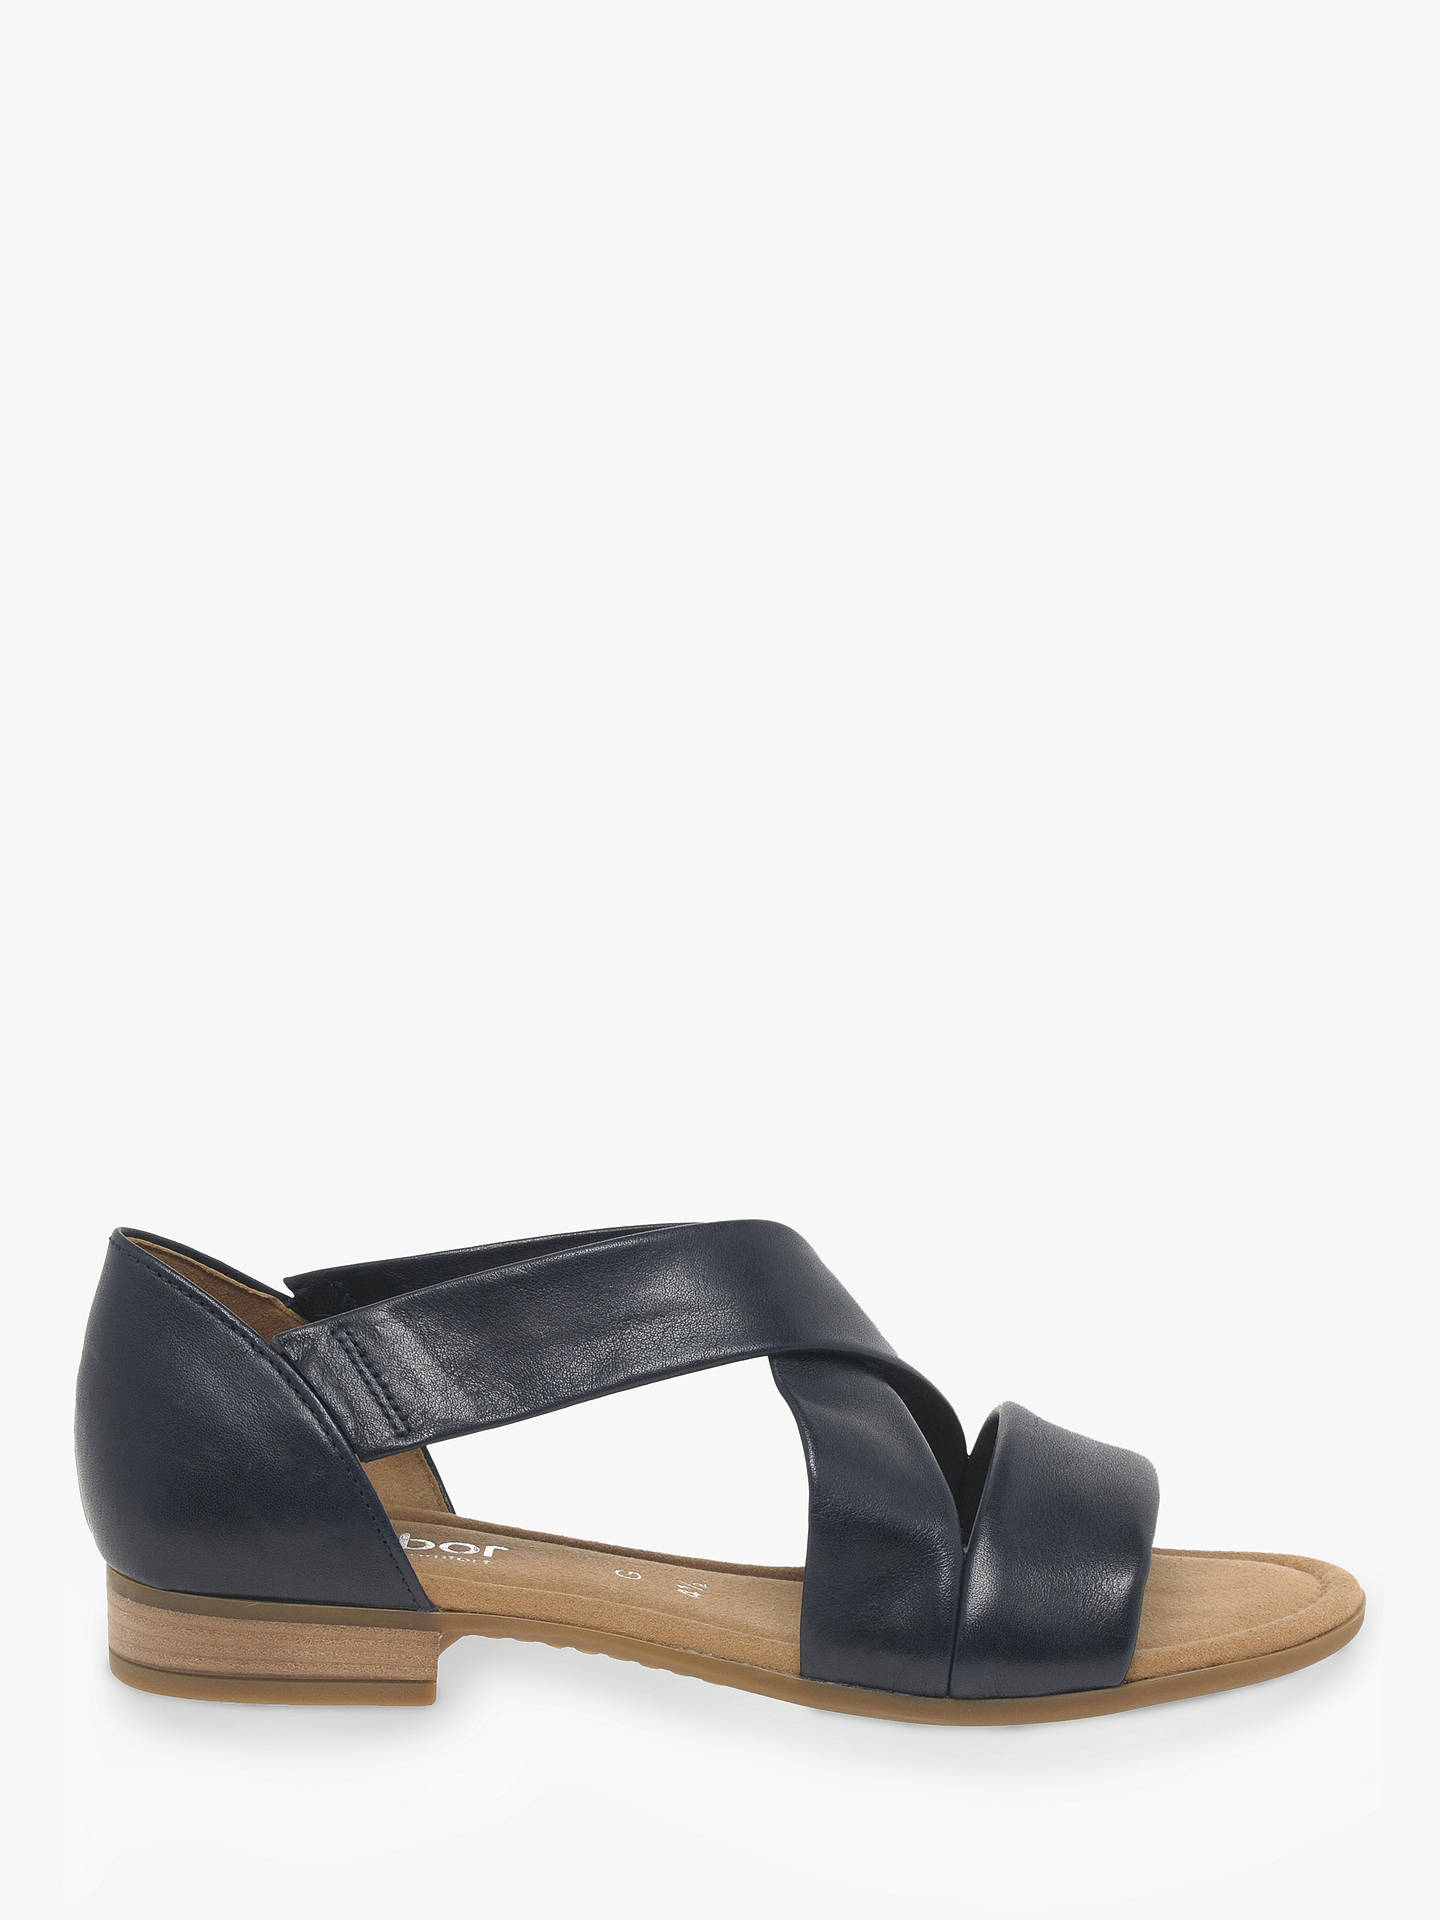 1a50031fd32 Gabor Sweetly Wide Fit Cross Strap Sandals at John Lewis   Partners